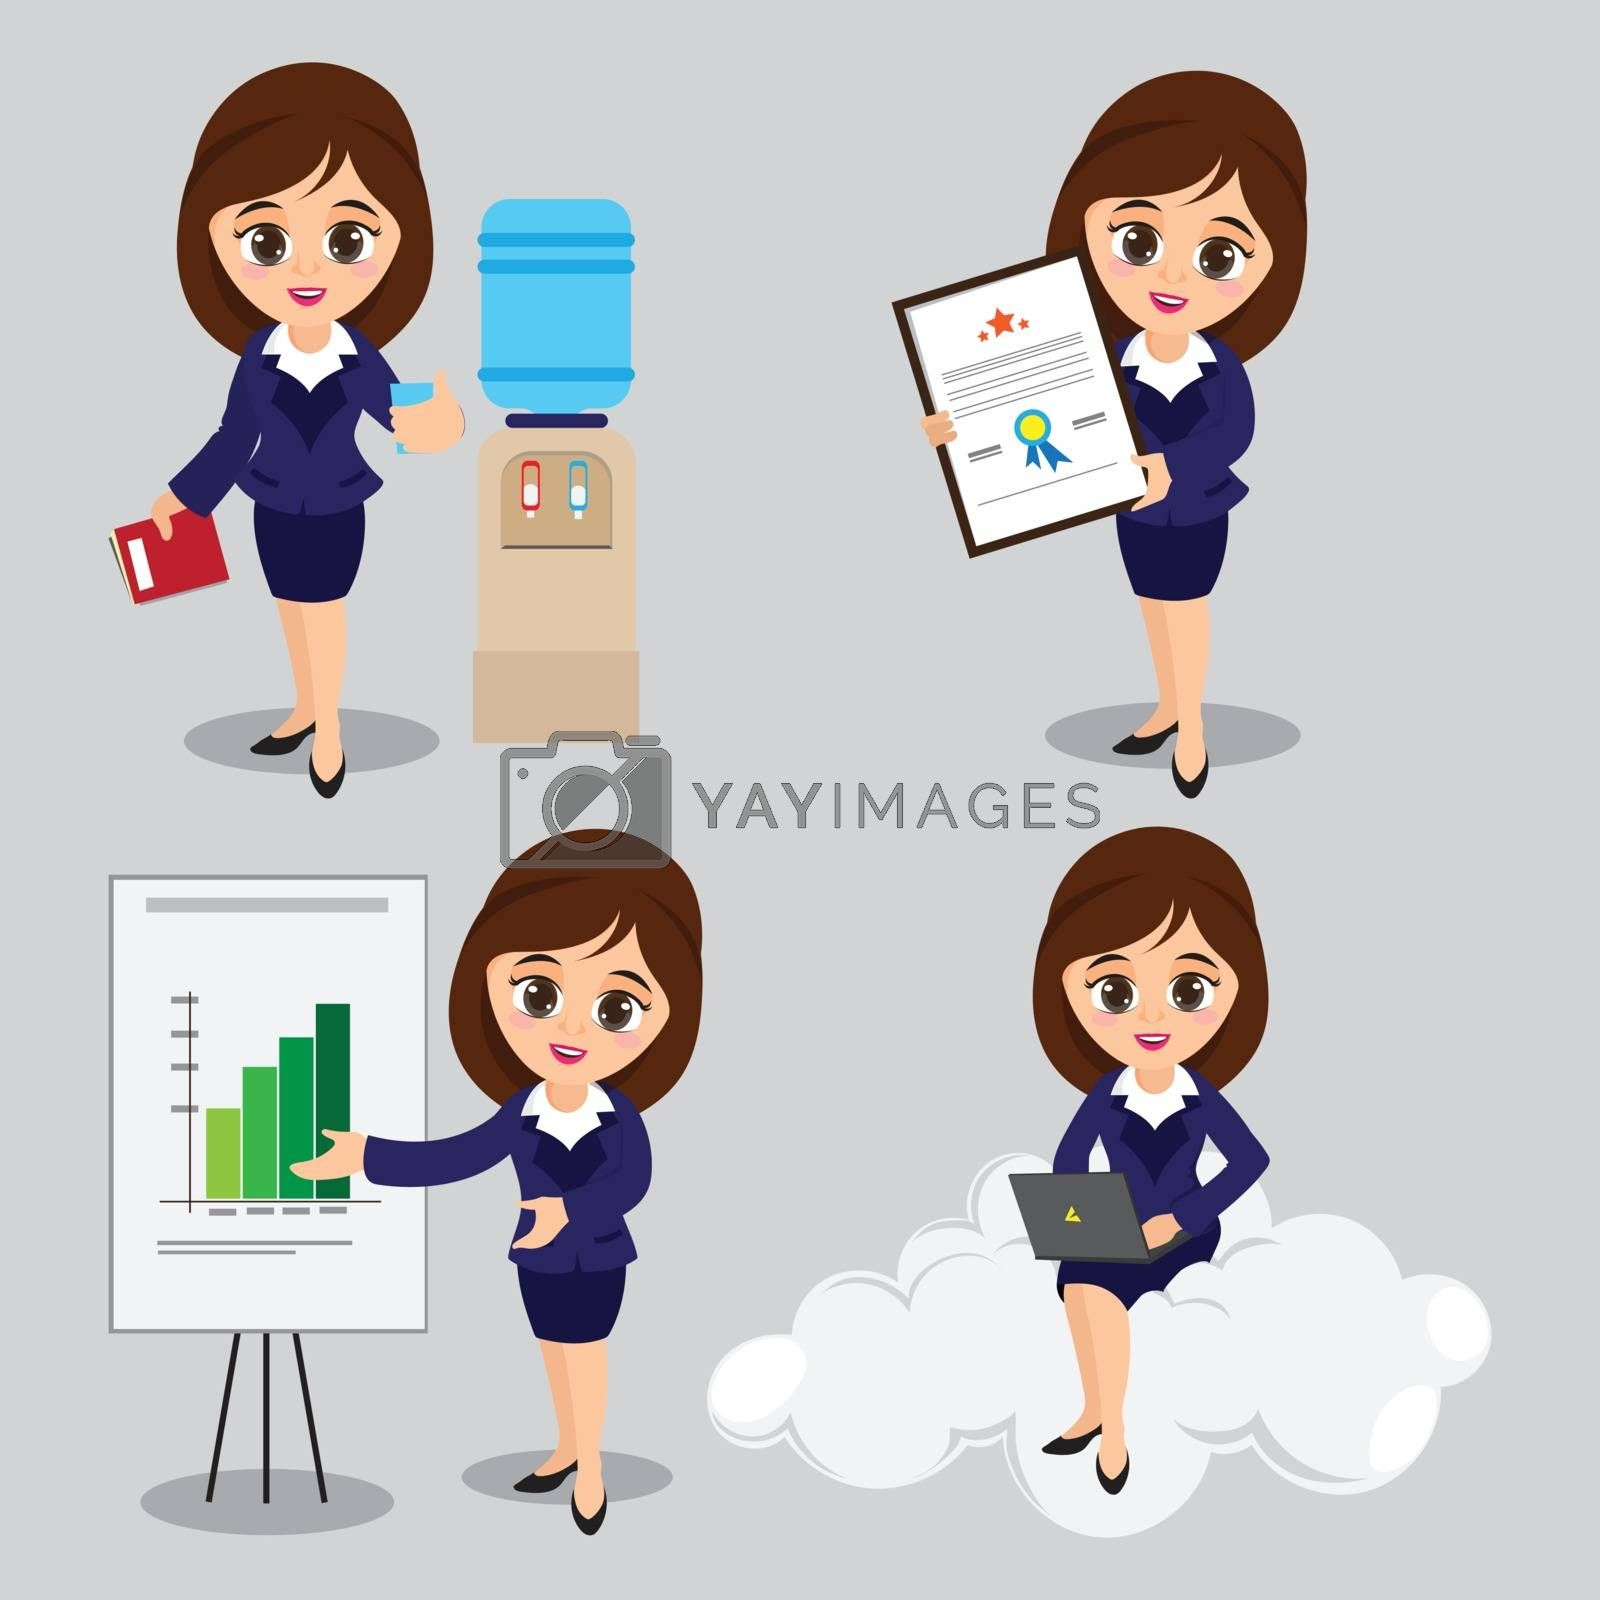 Cartoon illustration of Young Business Women characters in four different poses.